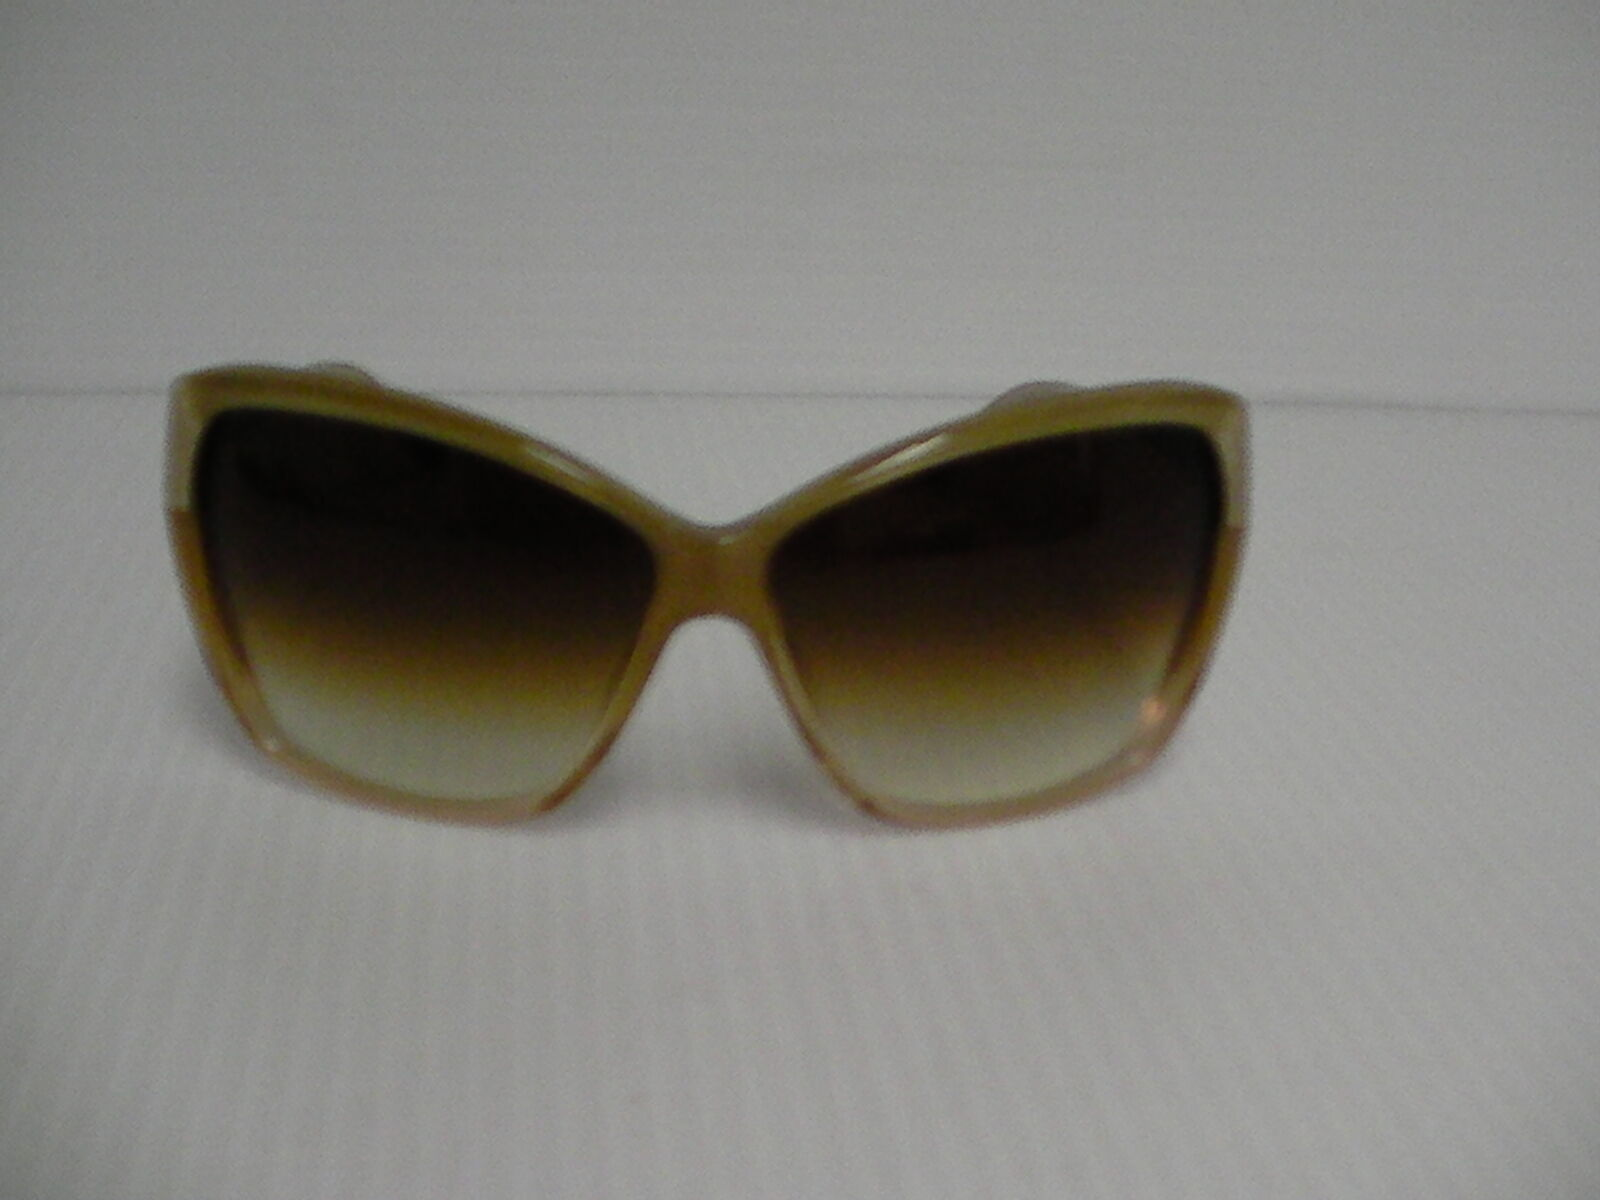 Womens OLIVER PEOPLES NEW SUNGLASSES SKYLA HAMMERED GOLD AMBER LENSE image 2